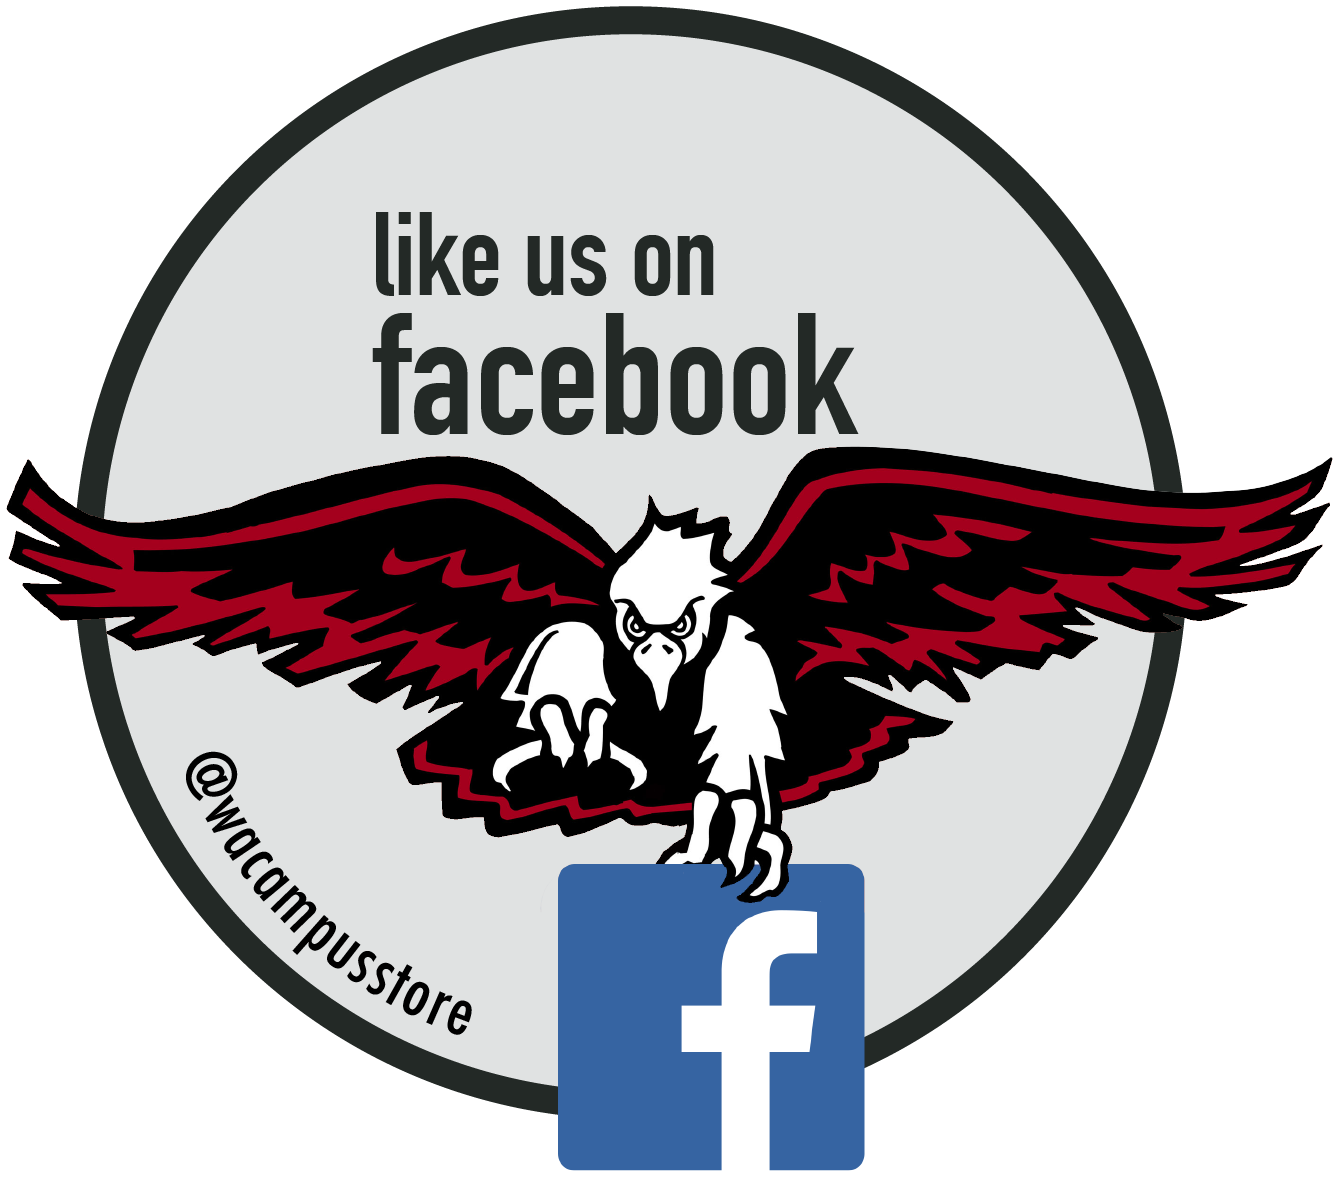 Like the Campus Store on Facebook